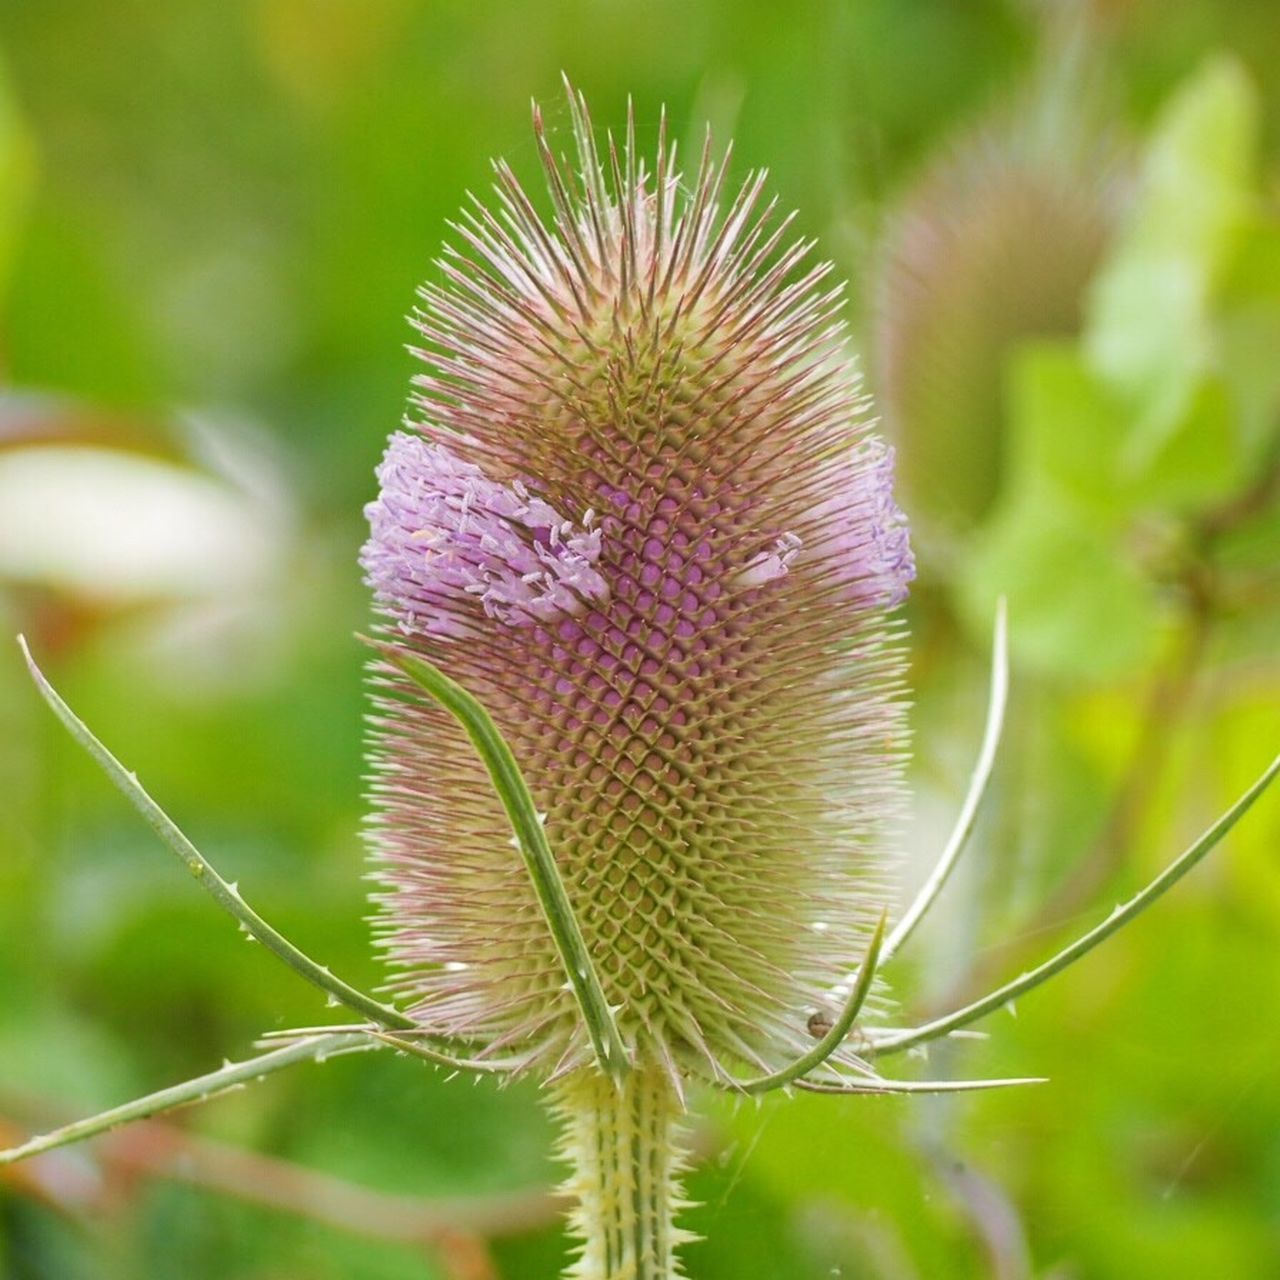 nature, growth, plant, flower, beauty in nature, close-up, focus on foreground, outdoors, no people, day, green color, spiked, thistle, fragility, flower head, freshness